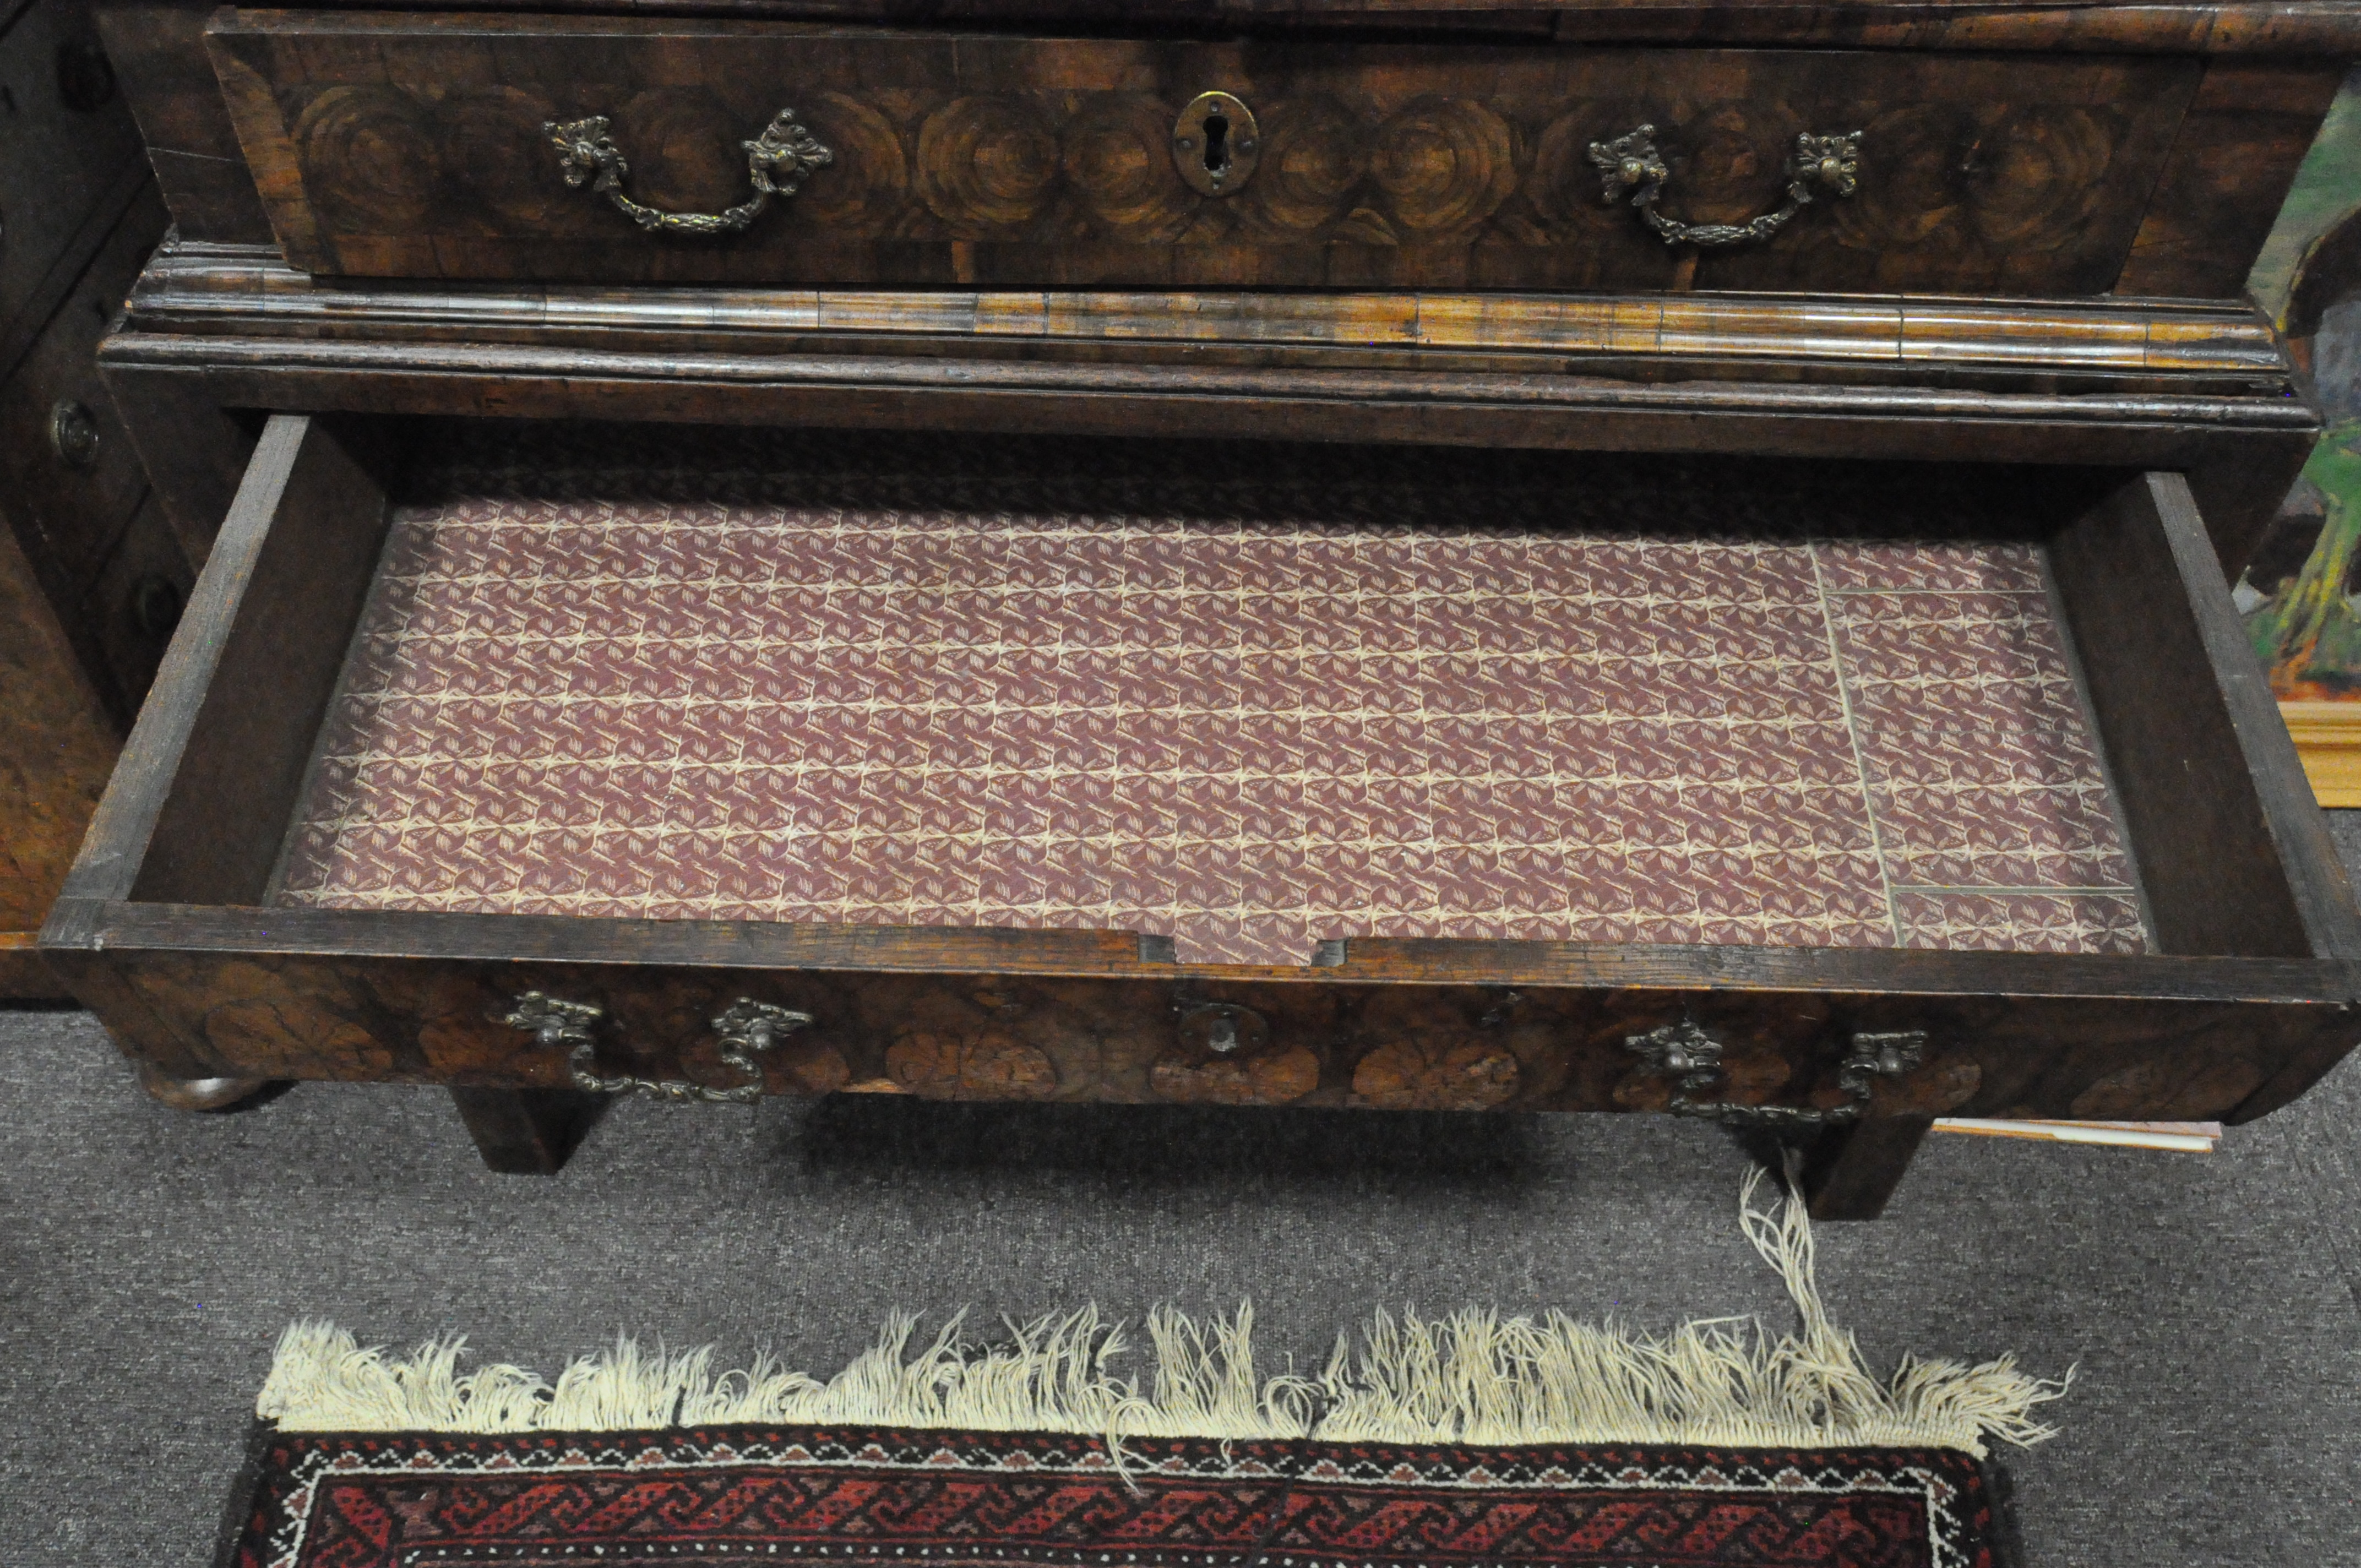 An oyster veneered cabinet on stand, 17th century style but later in date, - Image 9 of 18